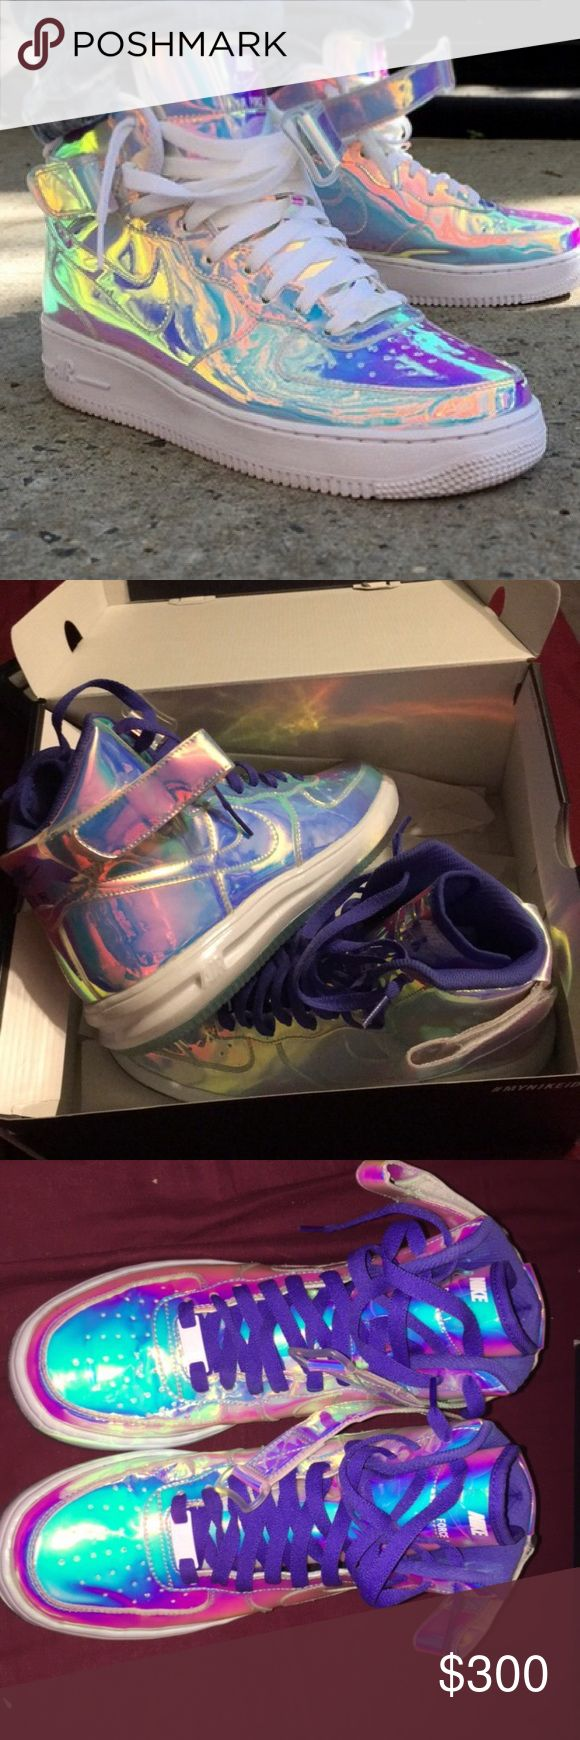 Nike Lunar Force 1 Iridescent Nike iD Men's size 7. Will fit women's 8.5 or 9. Never worn. Comes with box. Holographic iridescent color. Super rare. Purple laces. Comment for any questions. Nike Shoes Sneakers